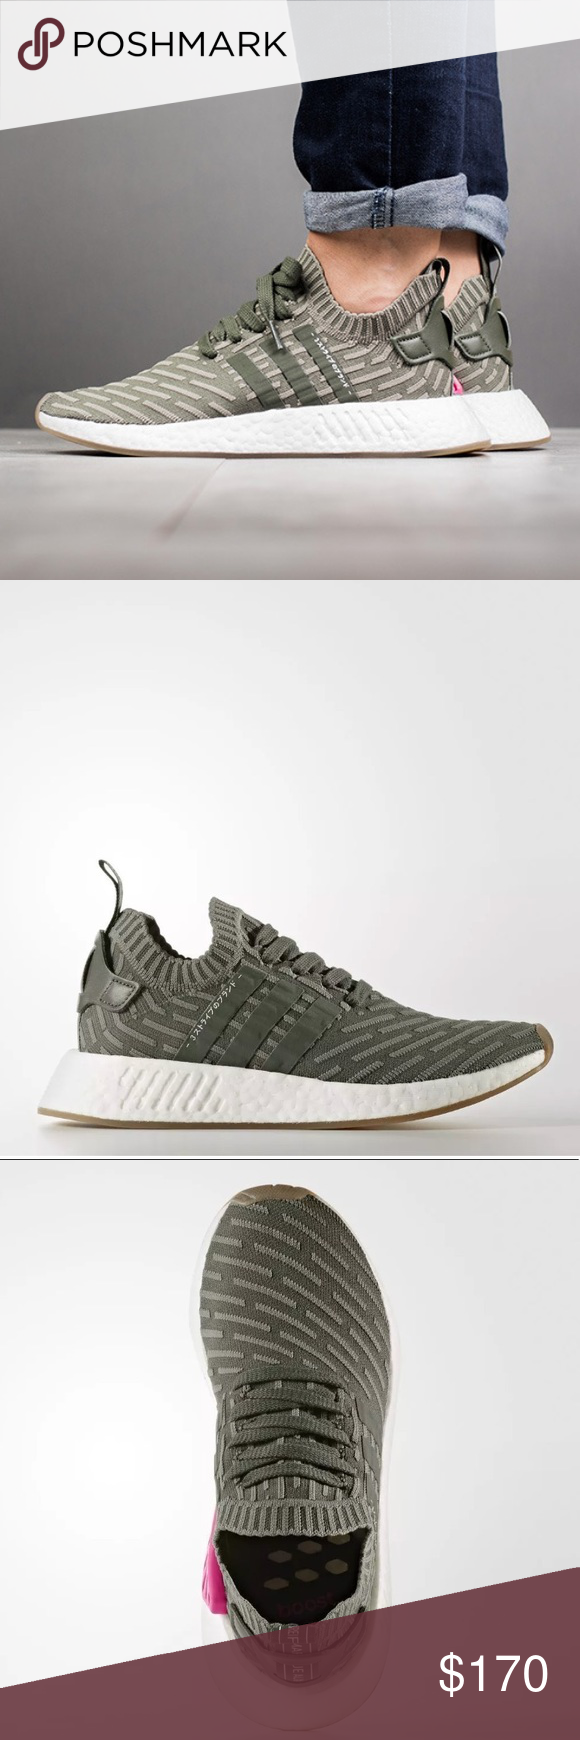 929eddc5eccd2 NMD R2 Japan Primeknit Sneakers BY9953 NMD R2 PRIMEKNIT SHOES THE  FORWARD-THINKING AESTHETIC OF THE